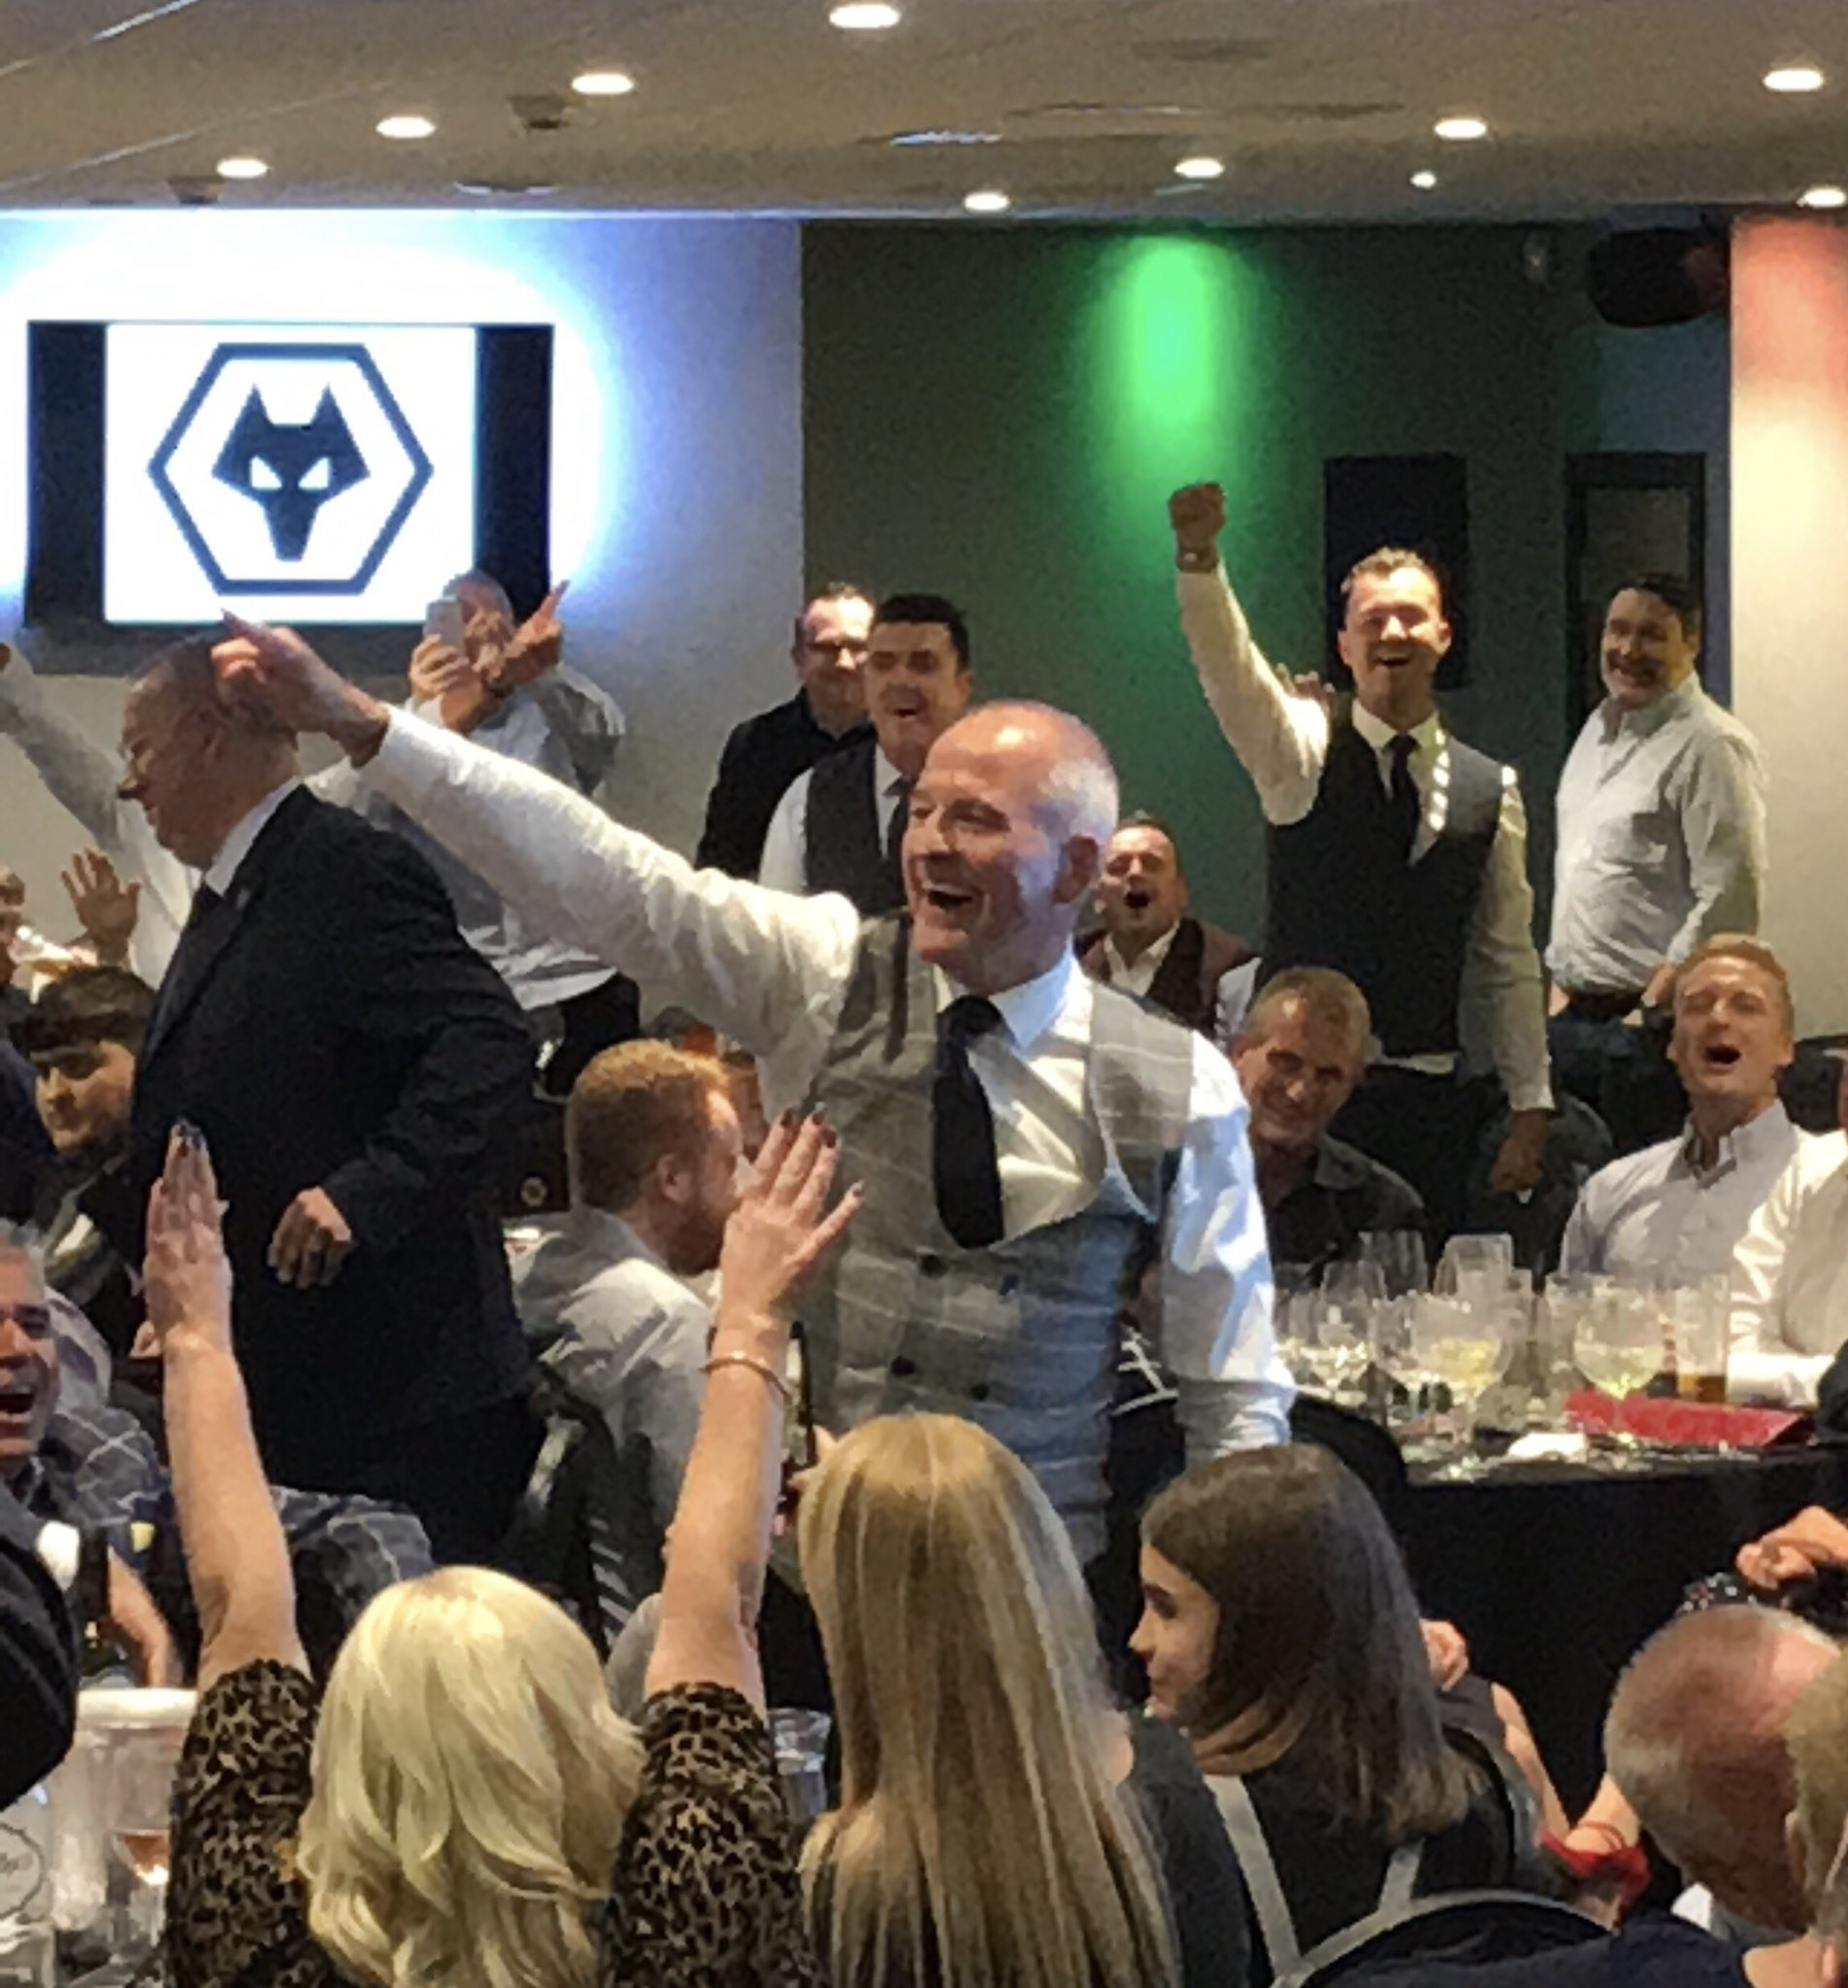 Busy weekend for #Wolves legend Steve Bull. Honoured by the fans at his @TheWolvesShirt tribute dinner on Friday night courtesy of @wolvesmatchworn, he spent Saturday in Dublin with @IrishWolvesFans then to @Barsport in Cannock with nine other Molineux stars for Sunday lunch. https://t.co/SPg9T6vYR2